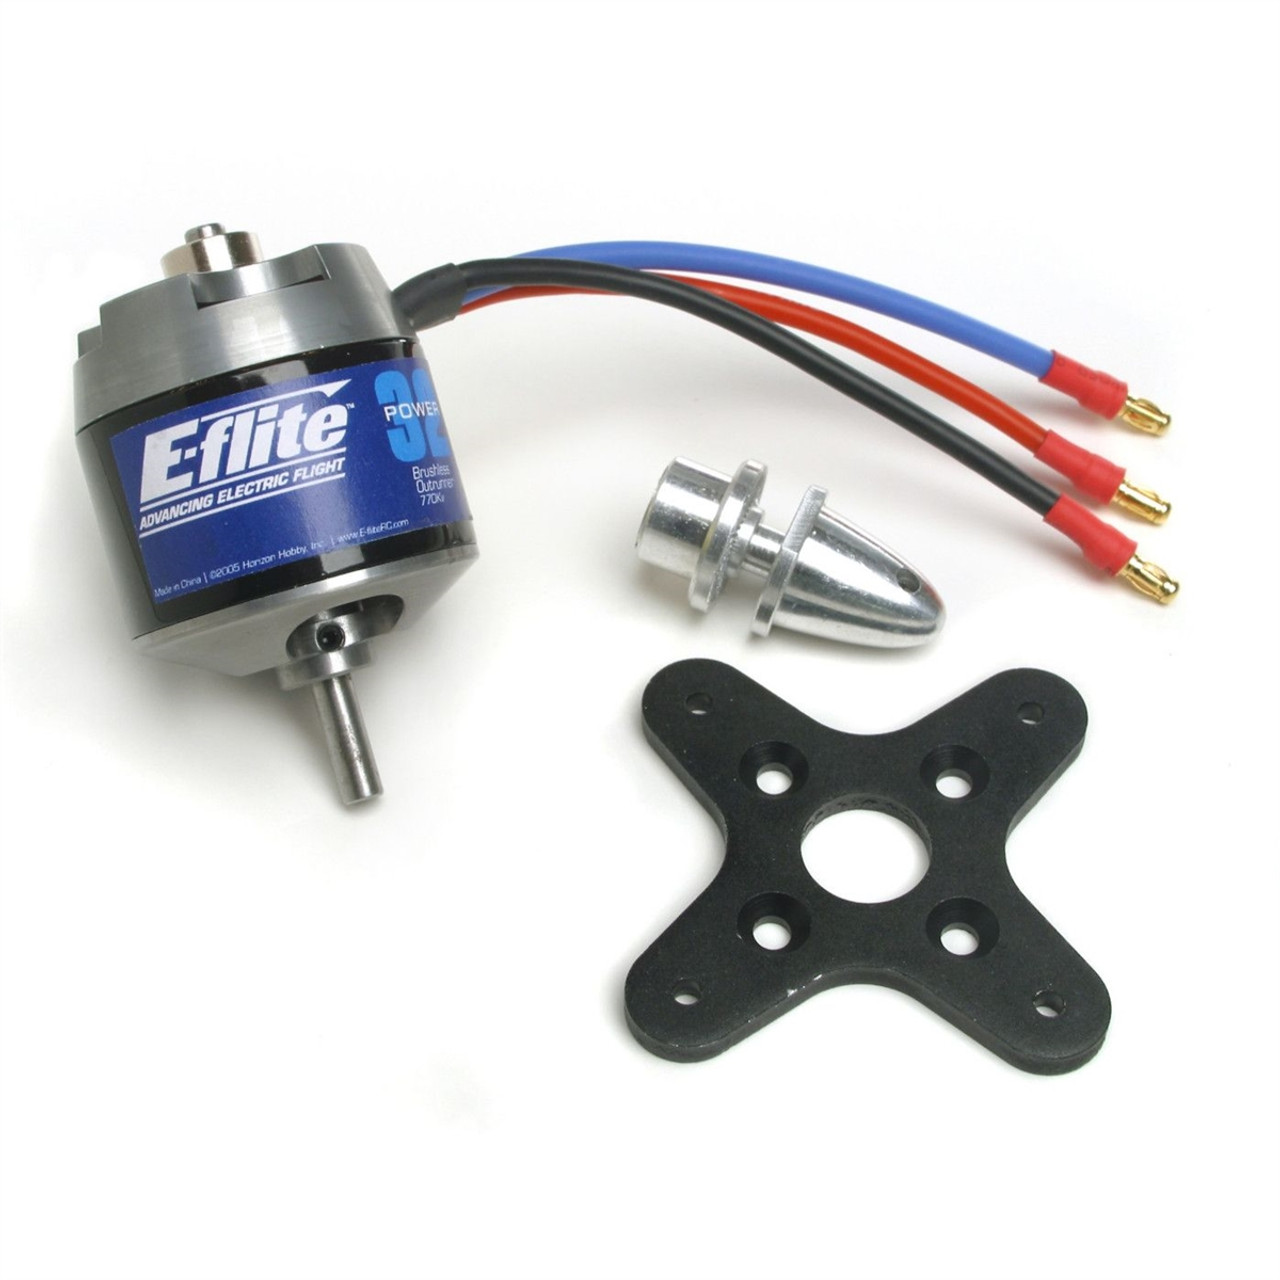 best website 0bf6e 9a19d Eflite Power 32 Brushless Outrunner Motor, 770Kv